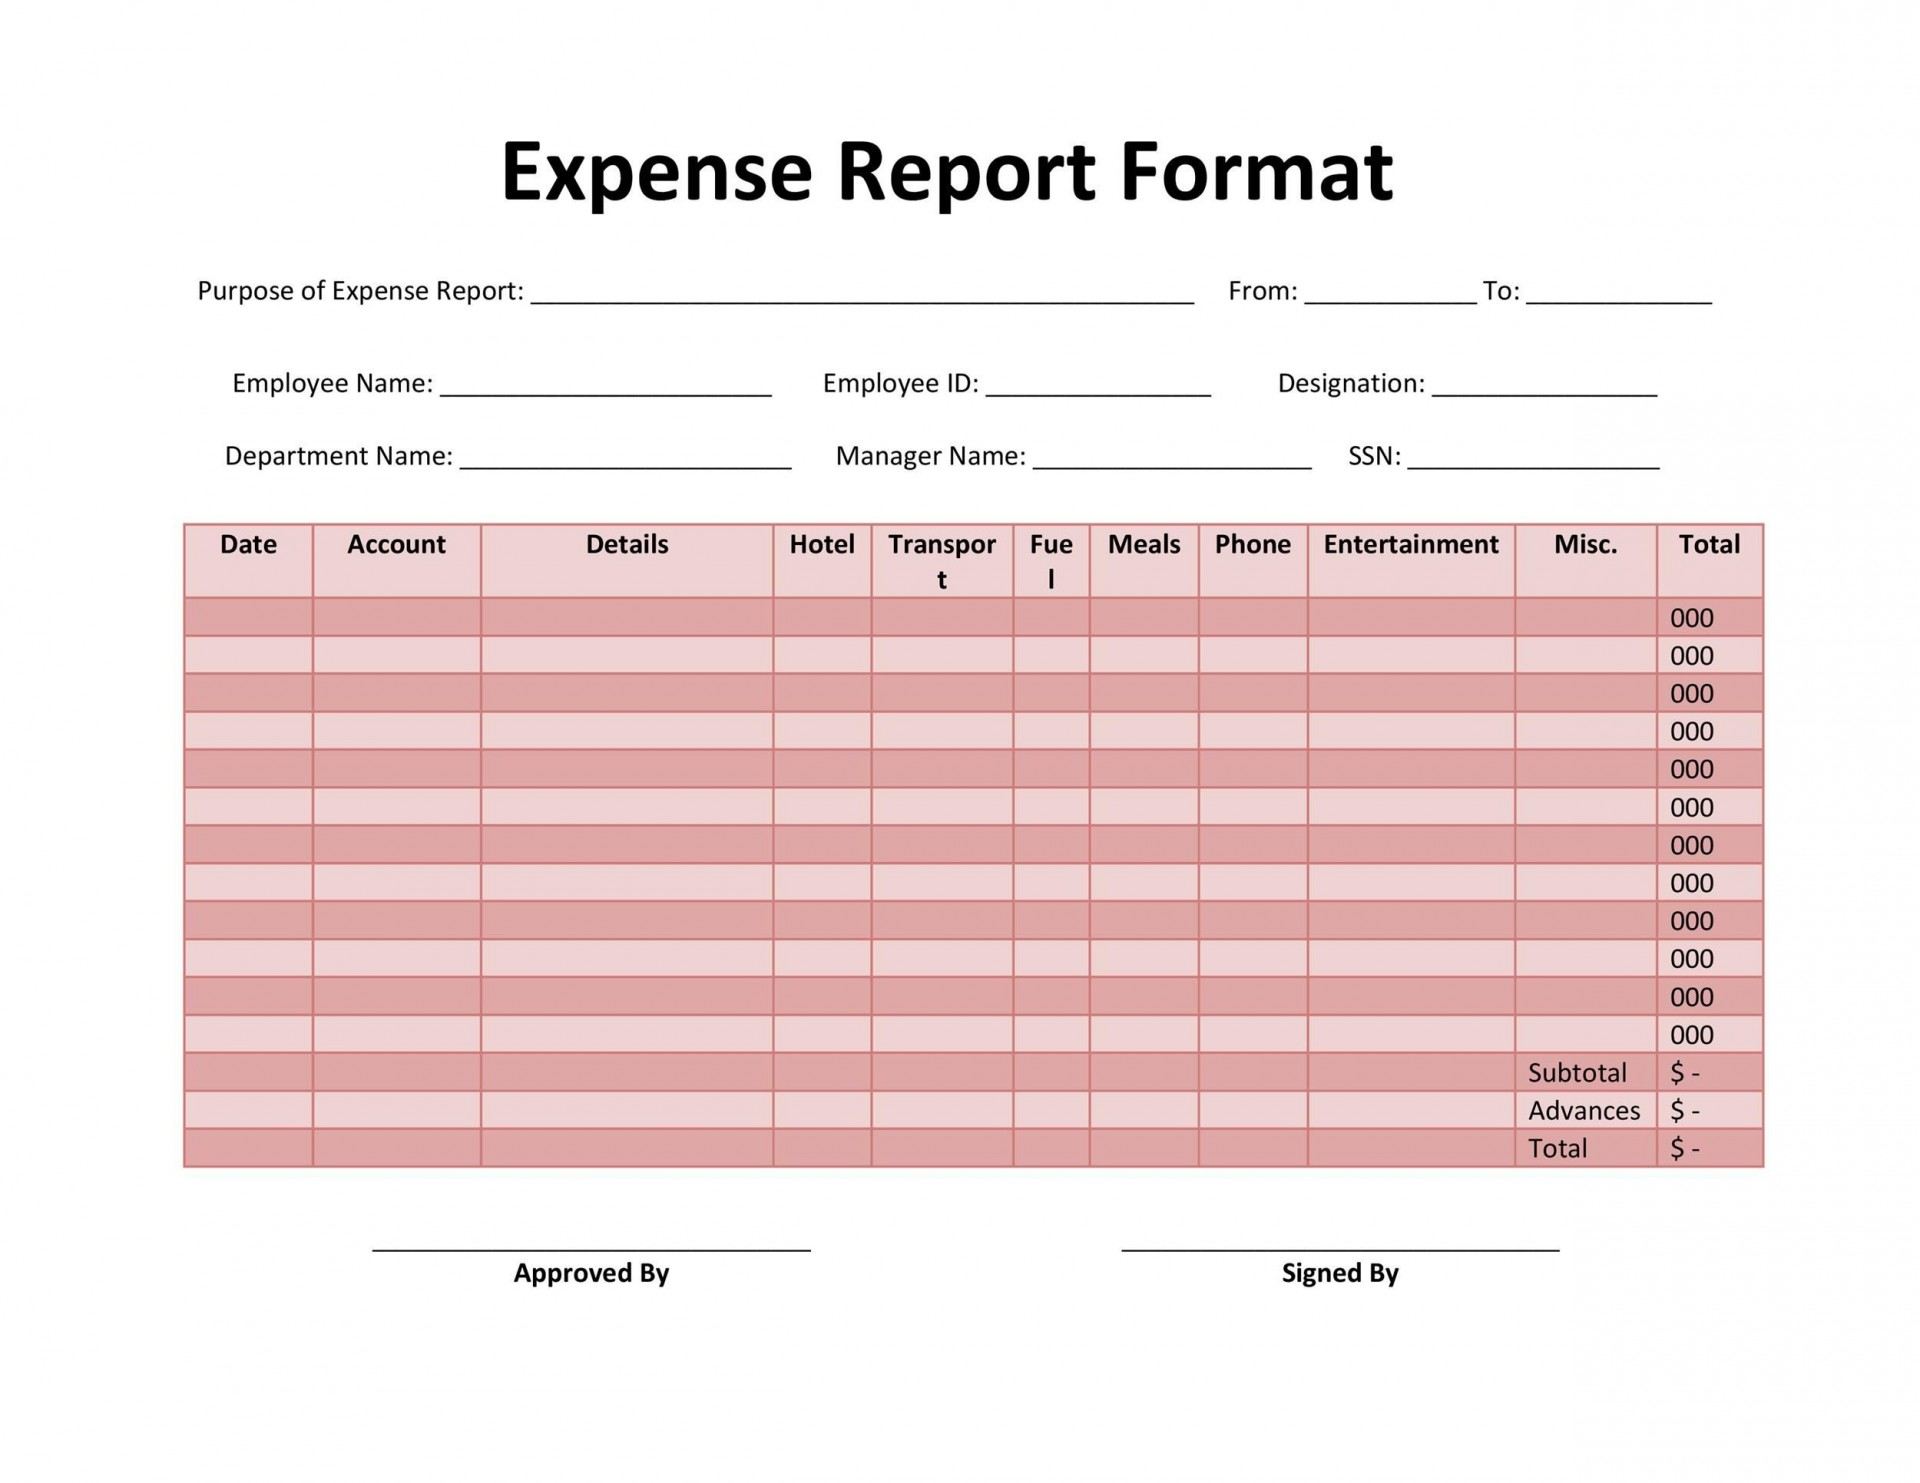 003 Archaicawful Travel Expense Report Template Highest Quality  Google Sheet Free Form Pdf1920